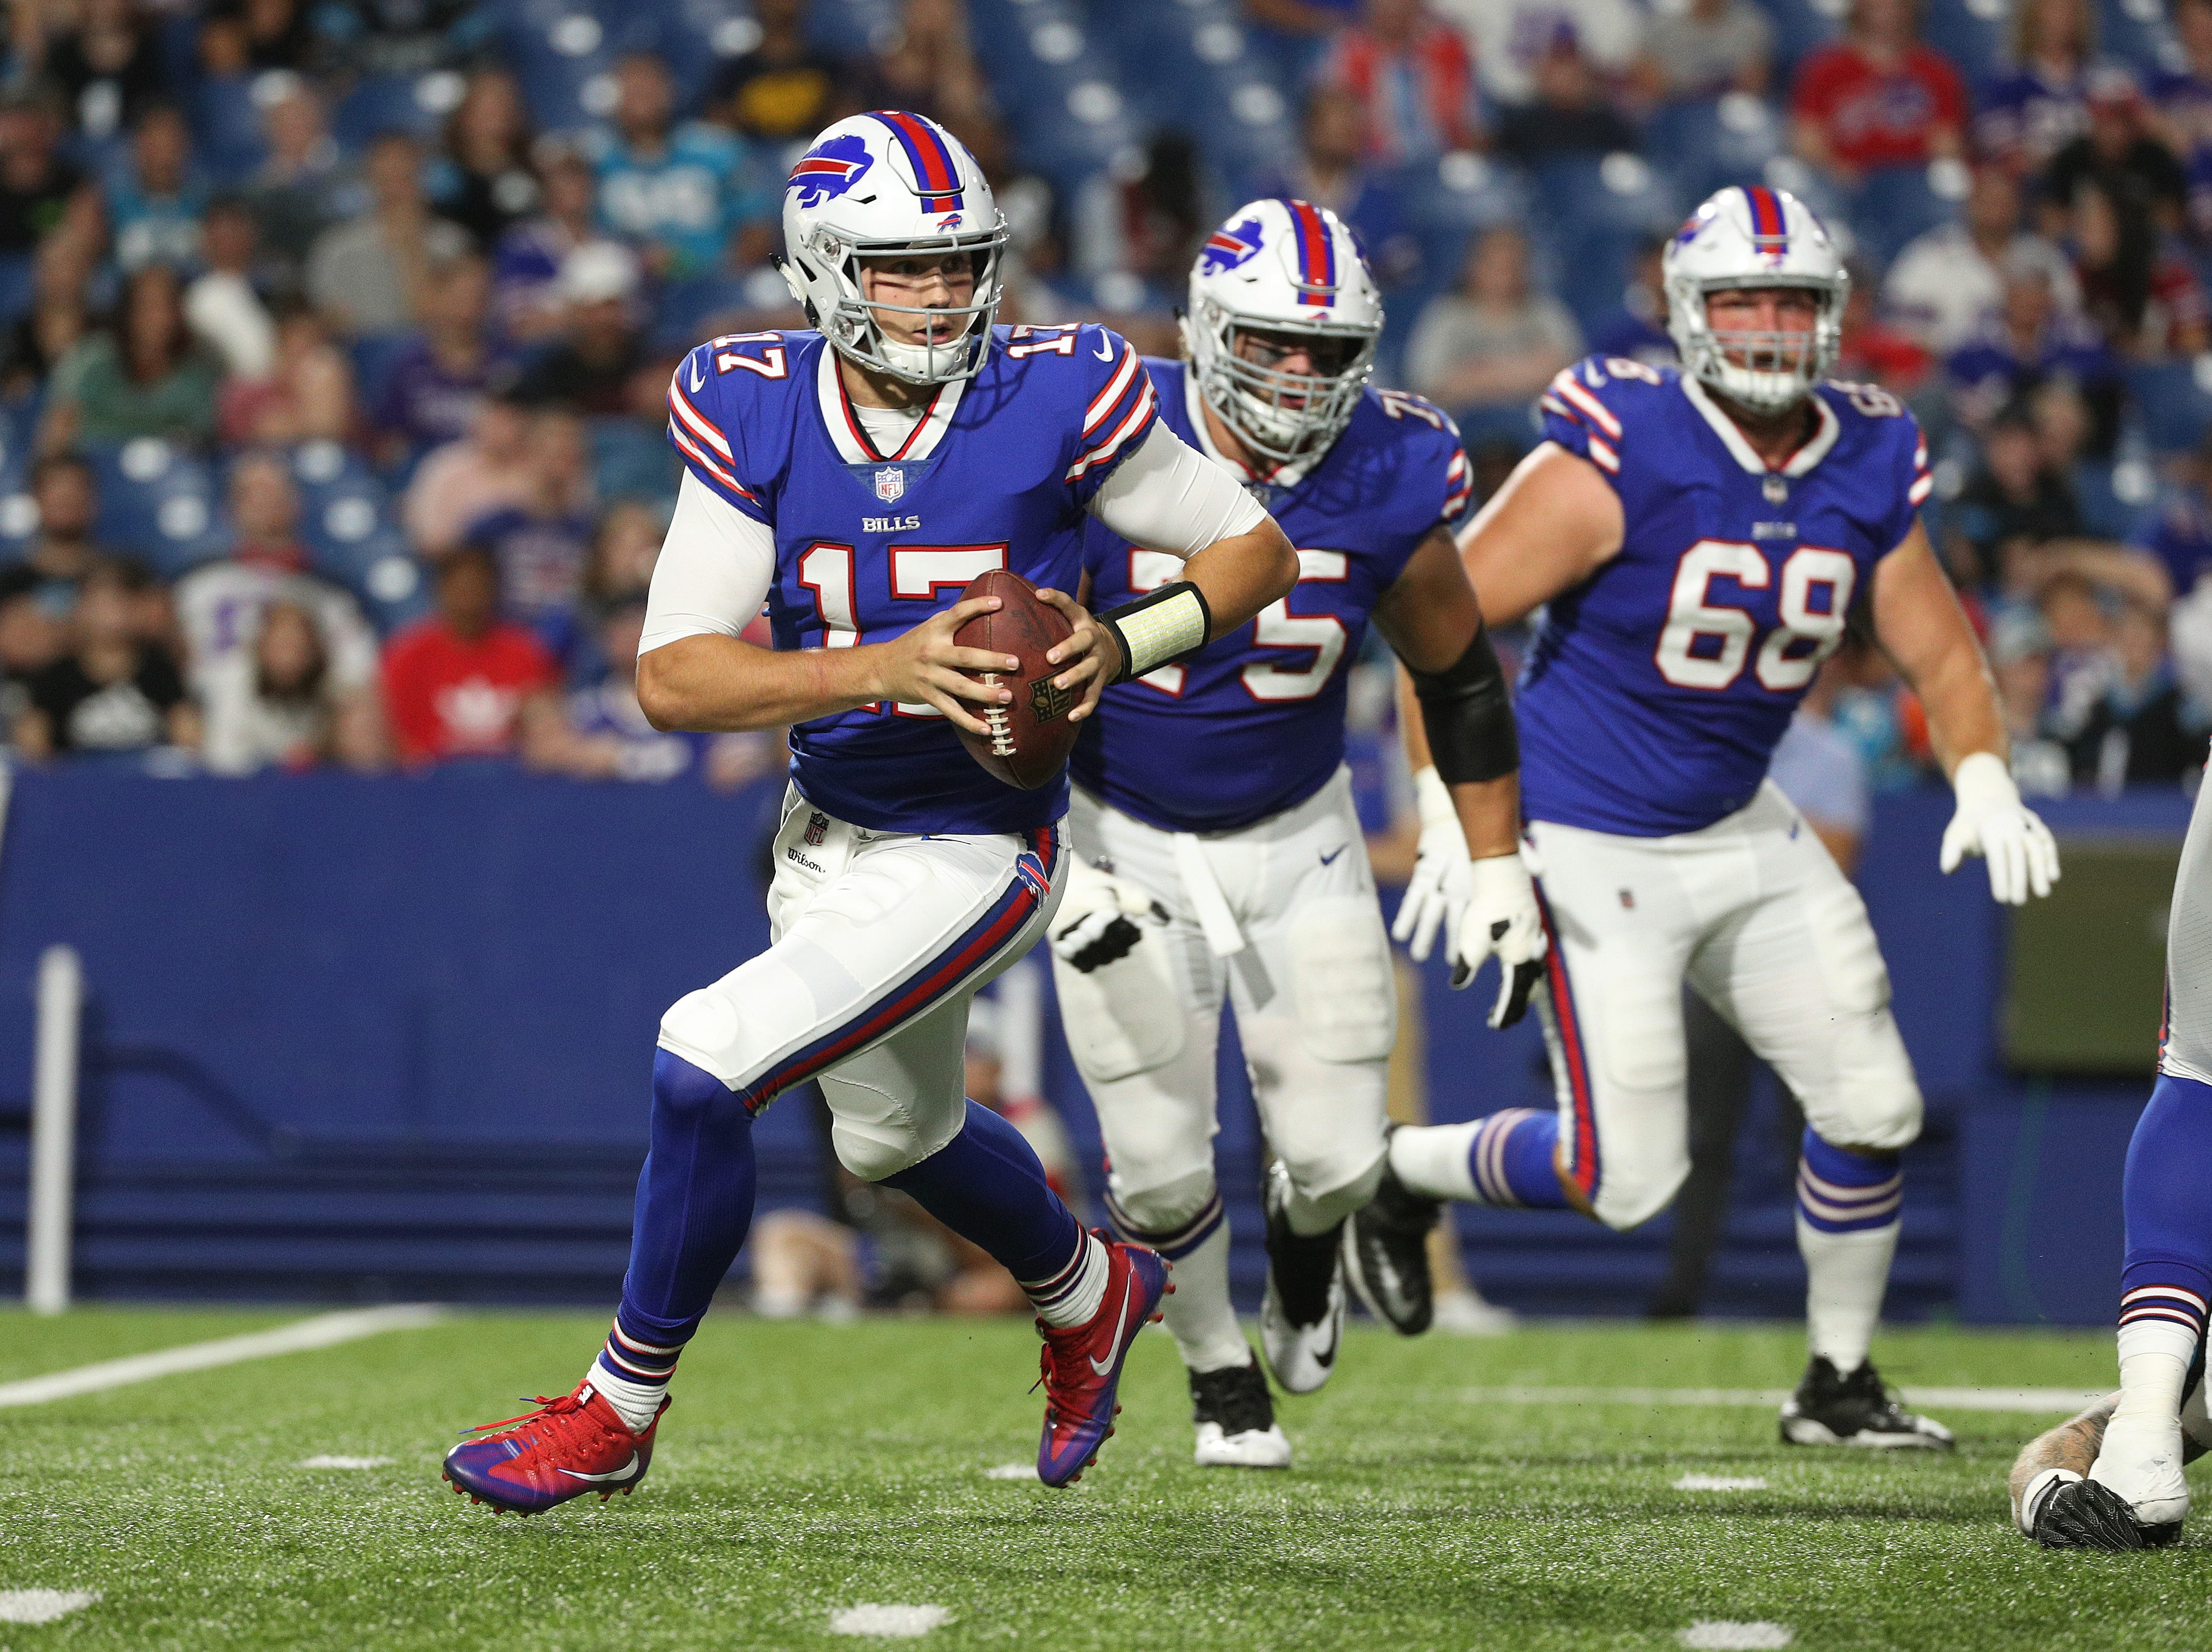 Quarterback Josh Allen escapes pressure by rolling out of the pocket.